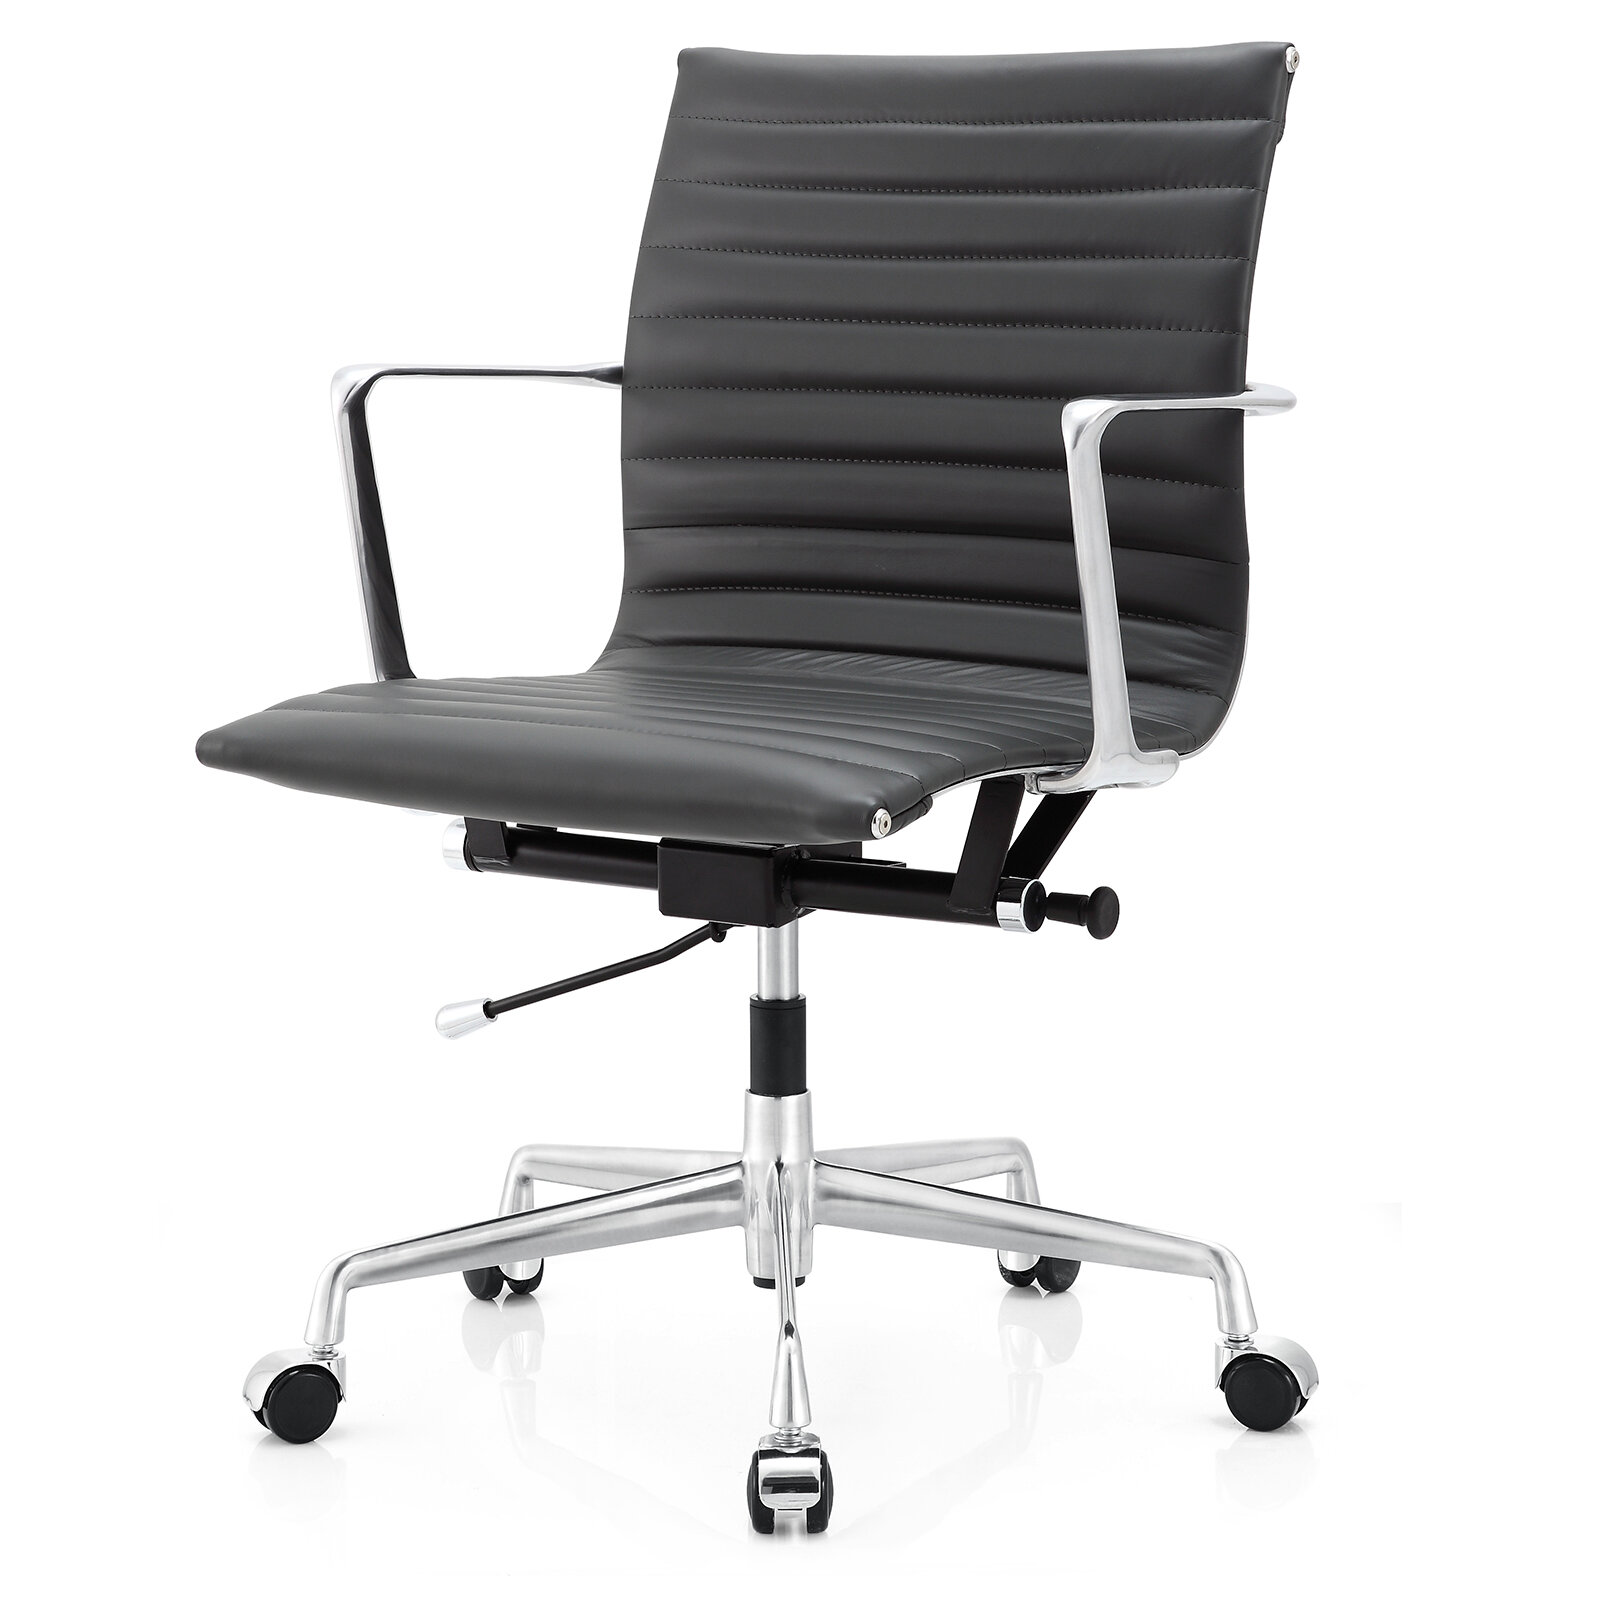 chair leather design comfort en designer office chairs buy seats